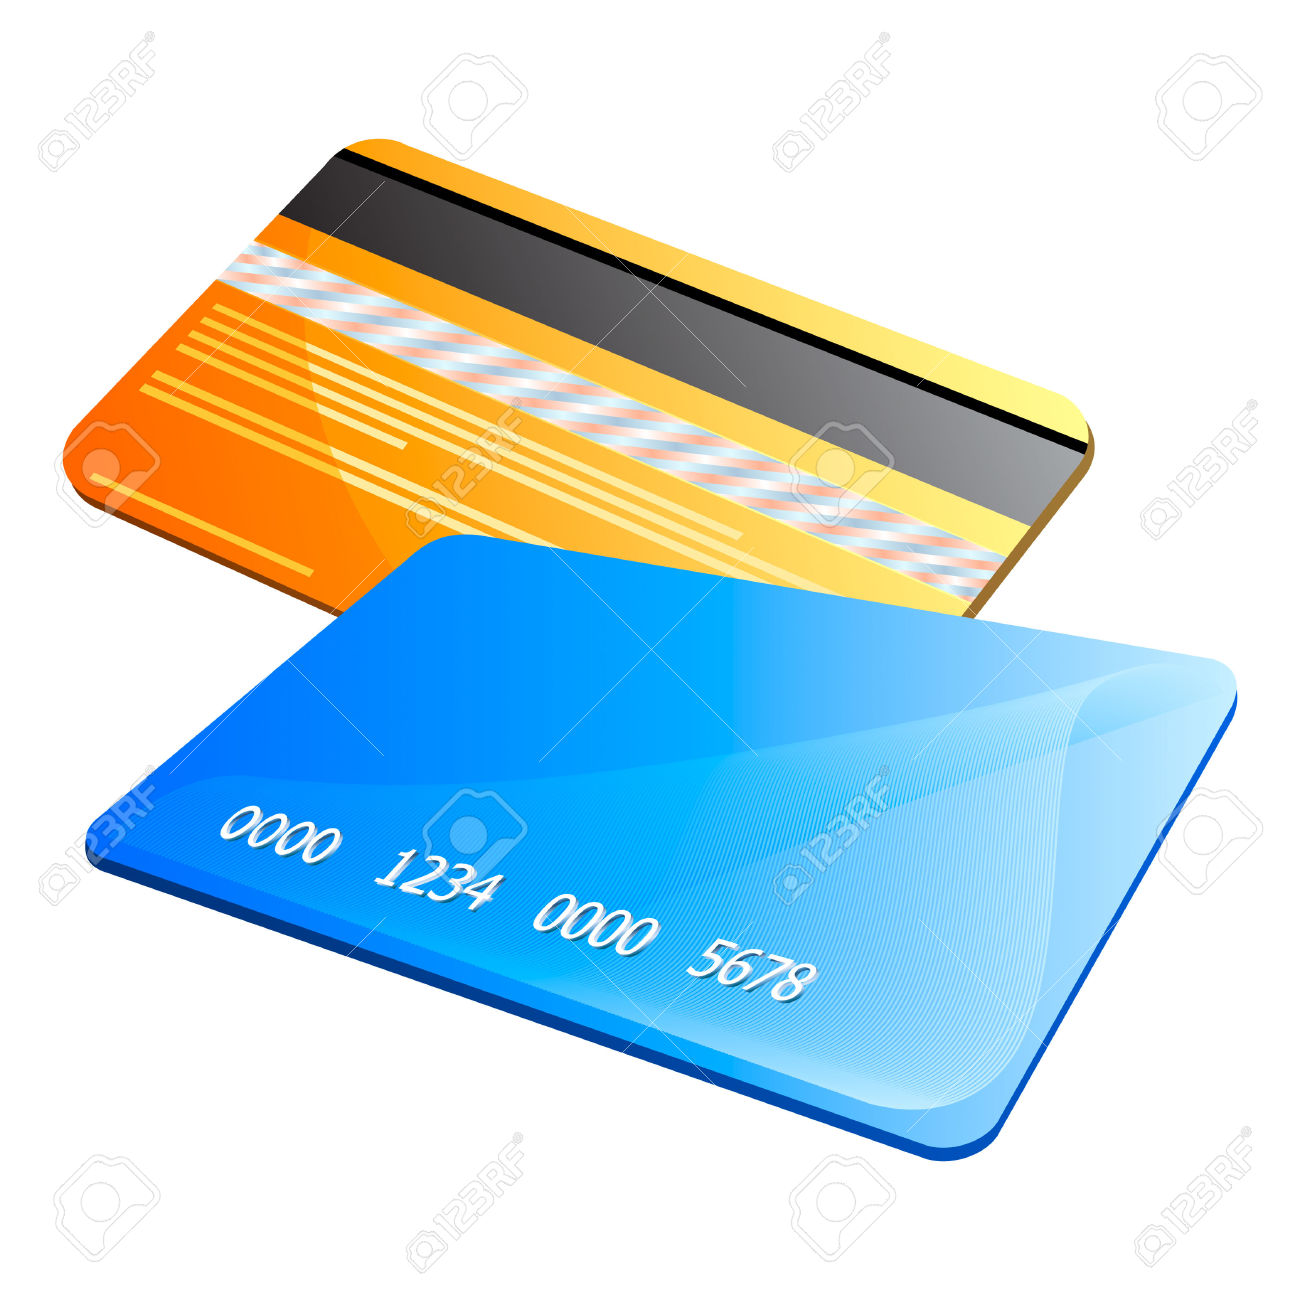 Free Credit Card Cliparts, Download Free Clip Art, Free Clip.